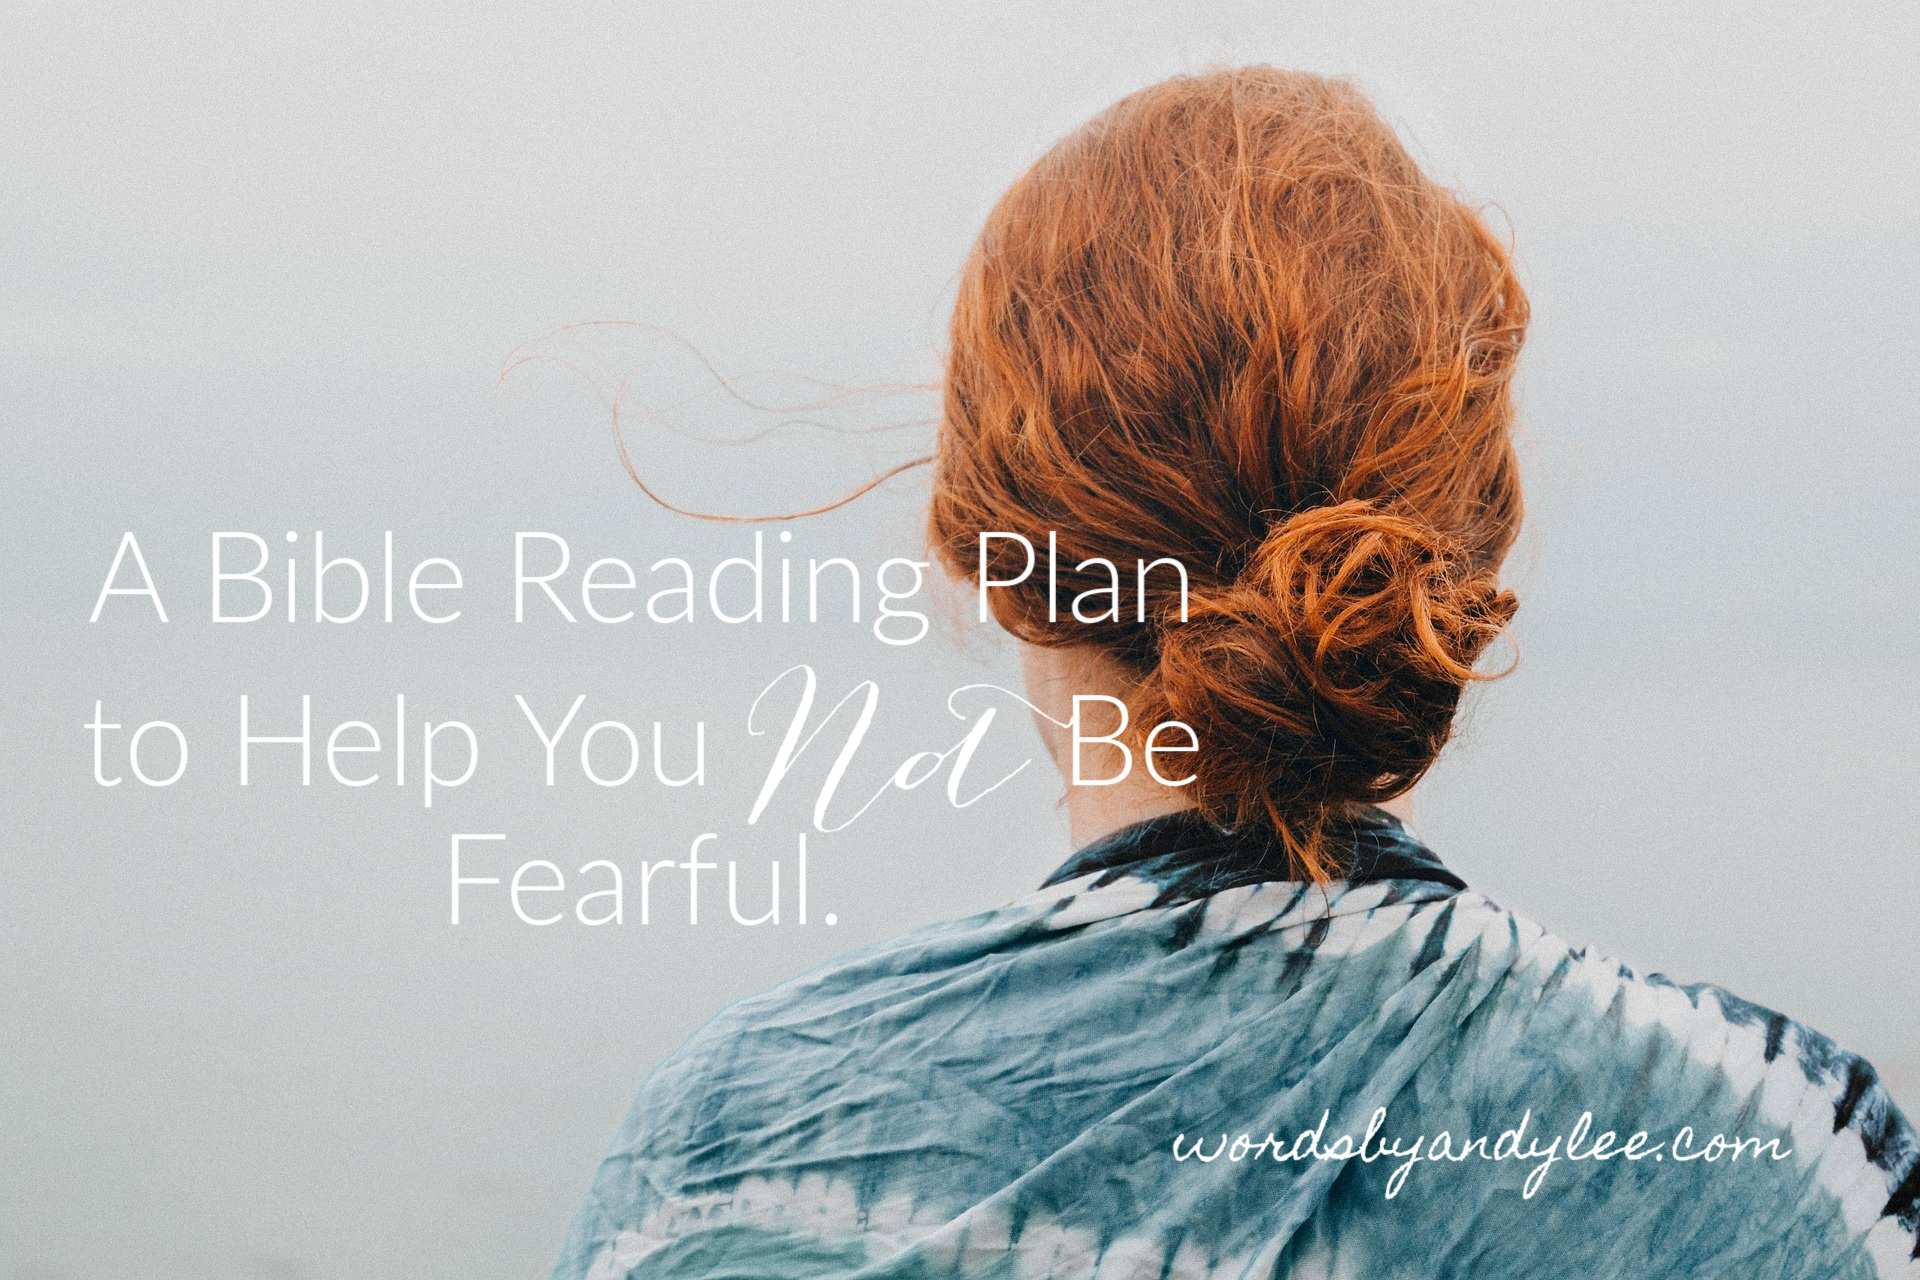 How Do I Stop Being Fearful?